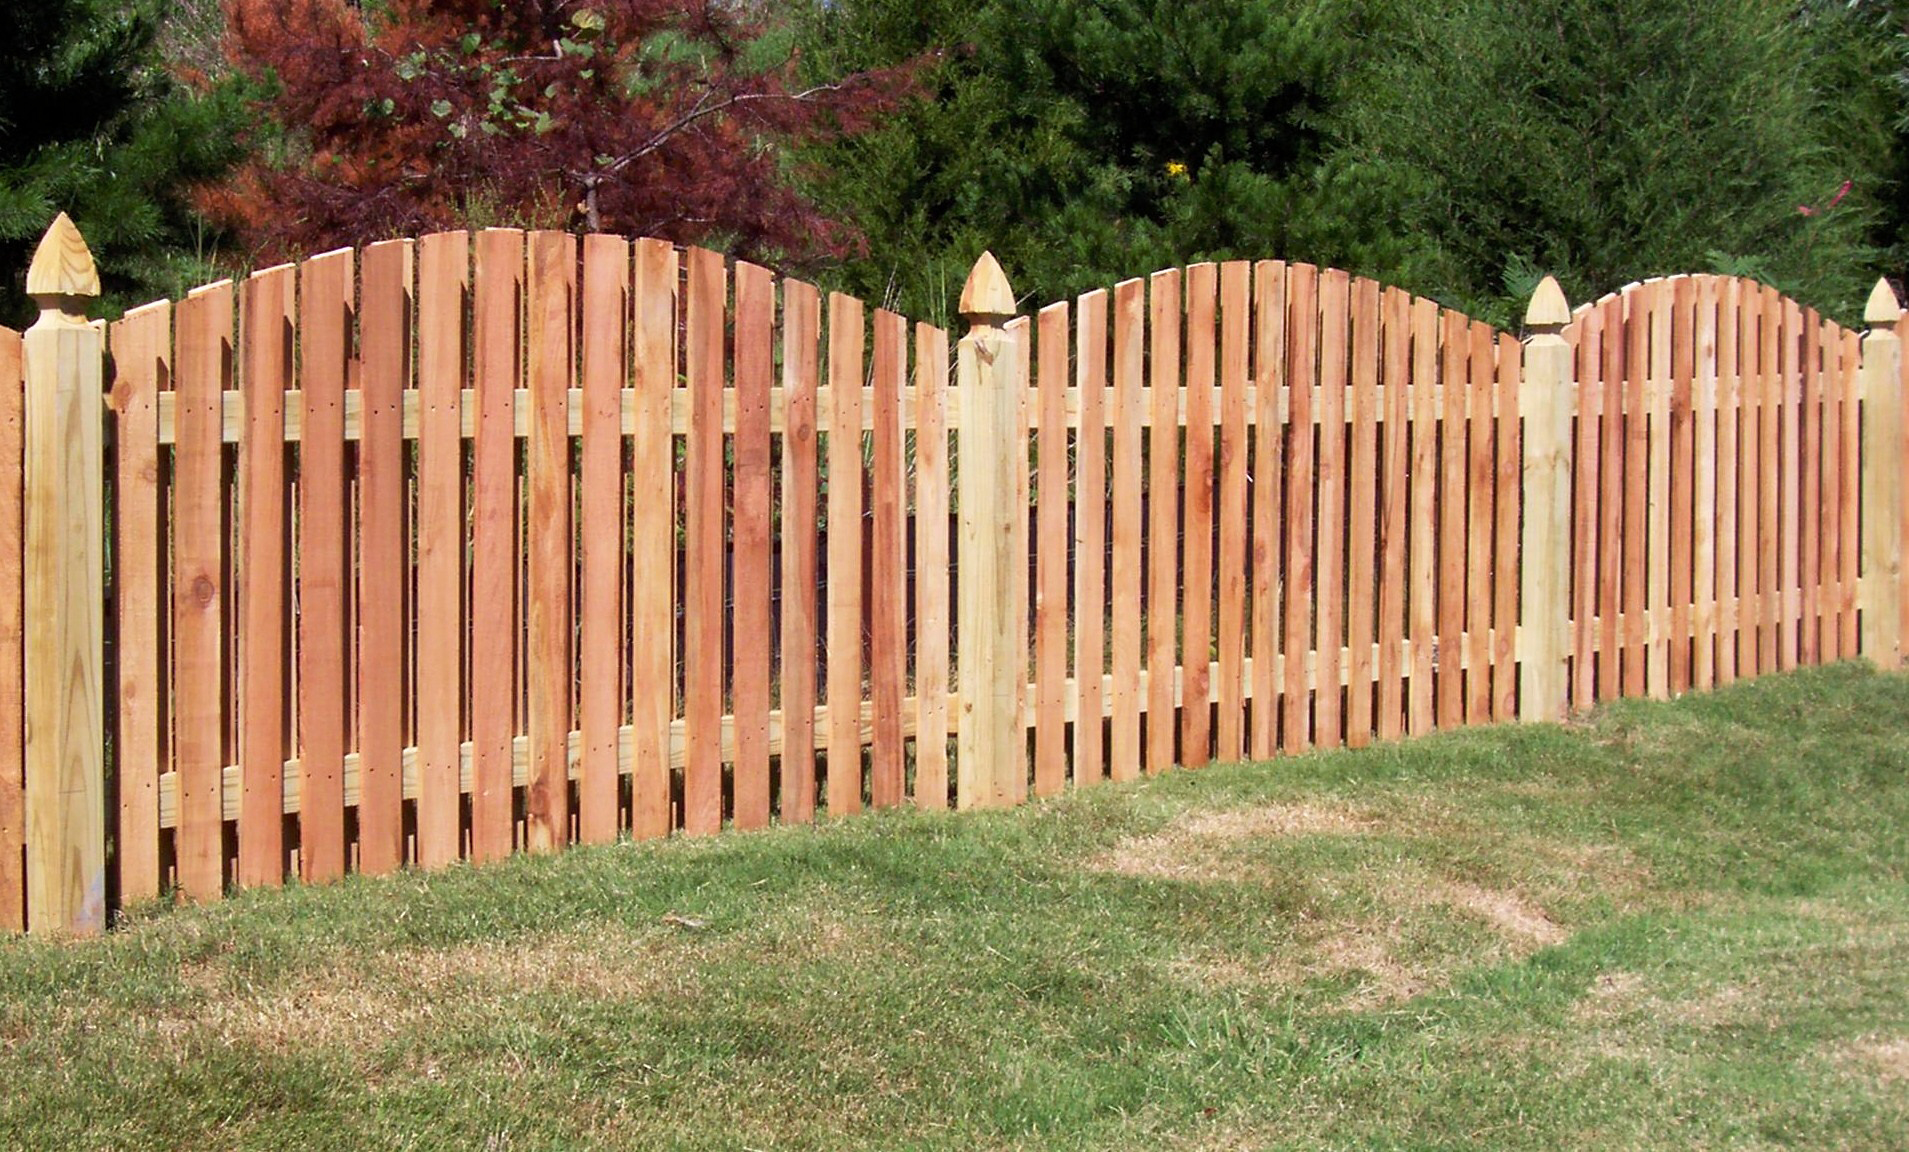 as well as fence repair building we offer other garden services